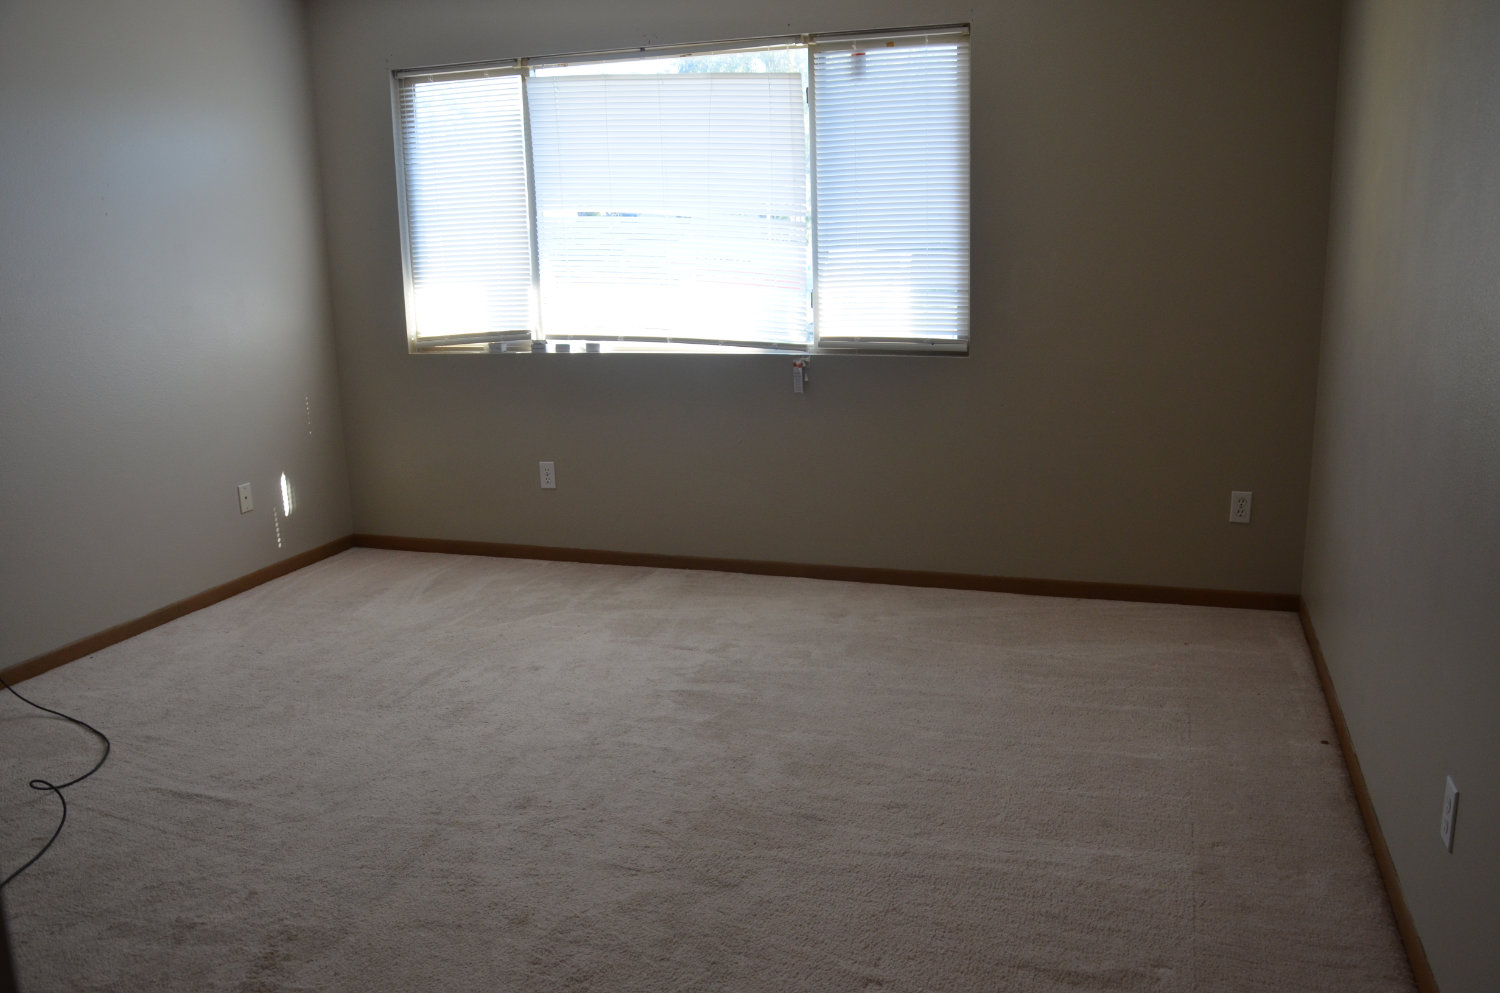 Bare living room